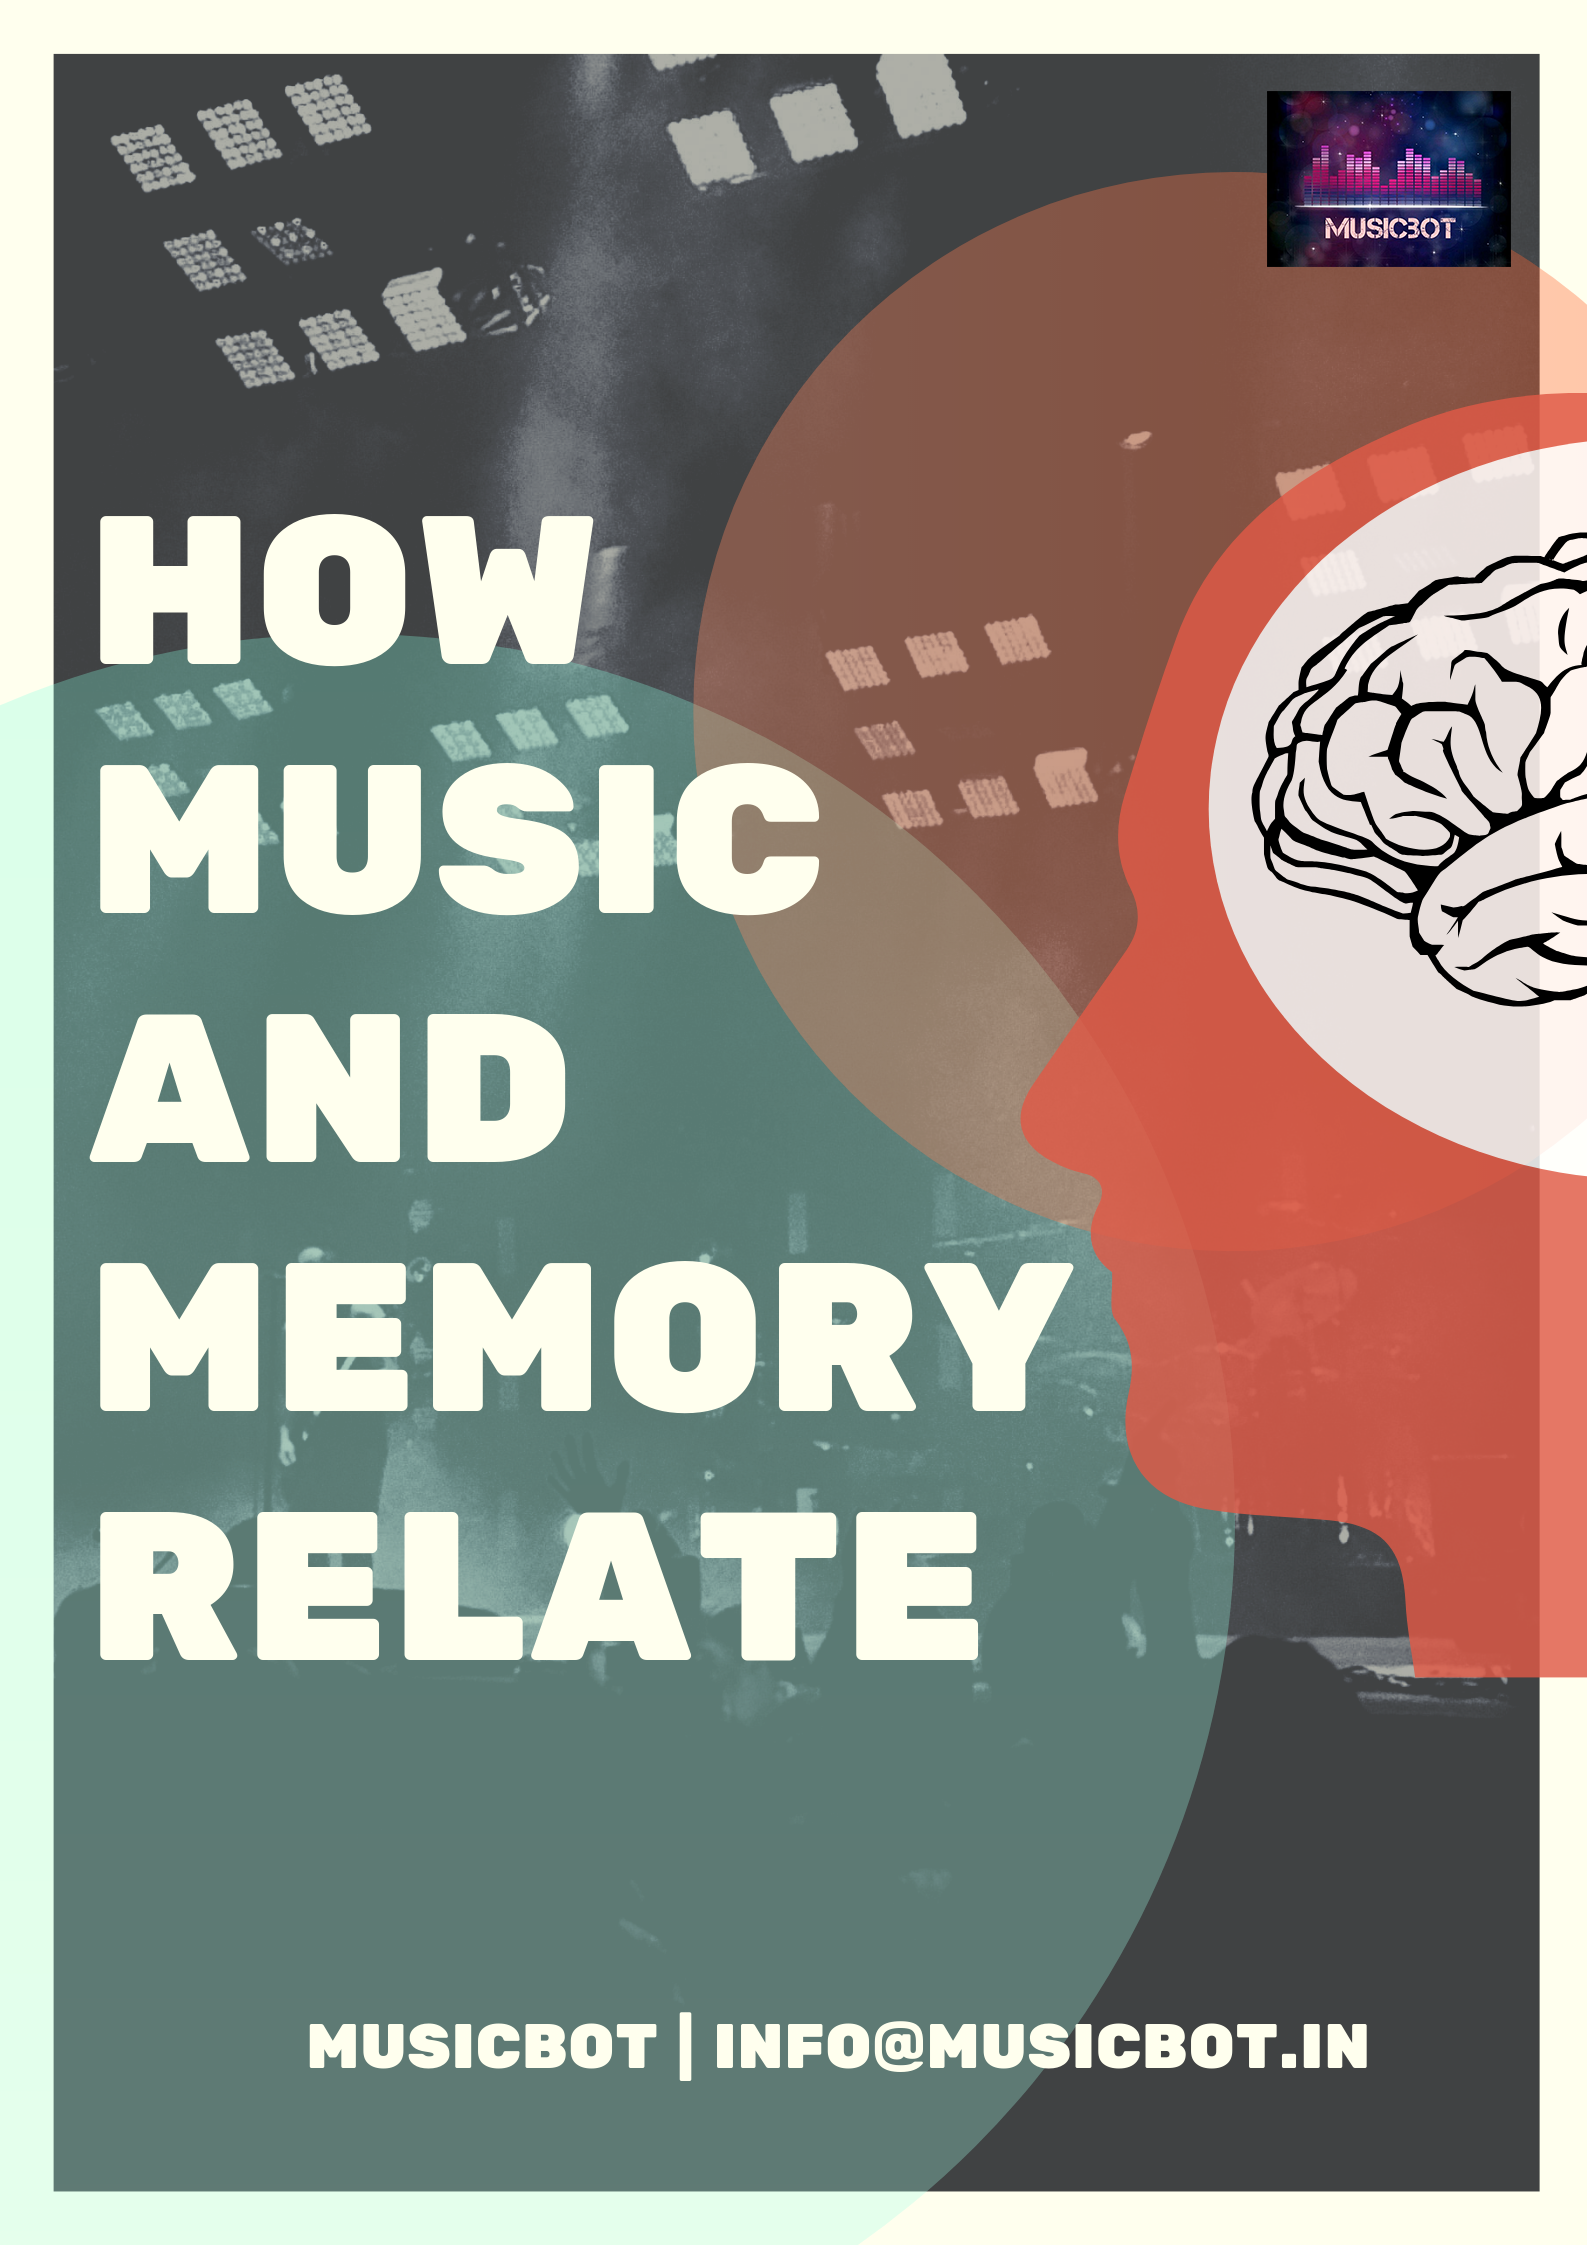 HOW MUSIC AND MEMORY RELATE?